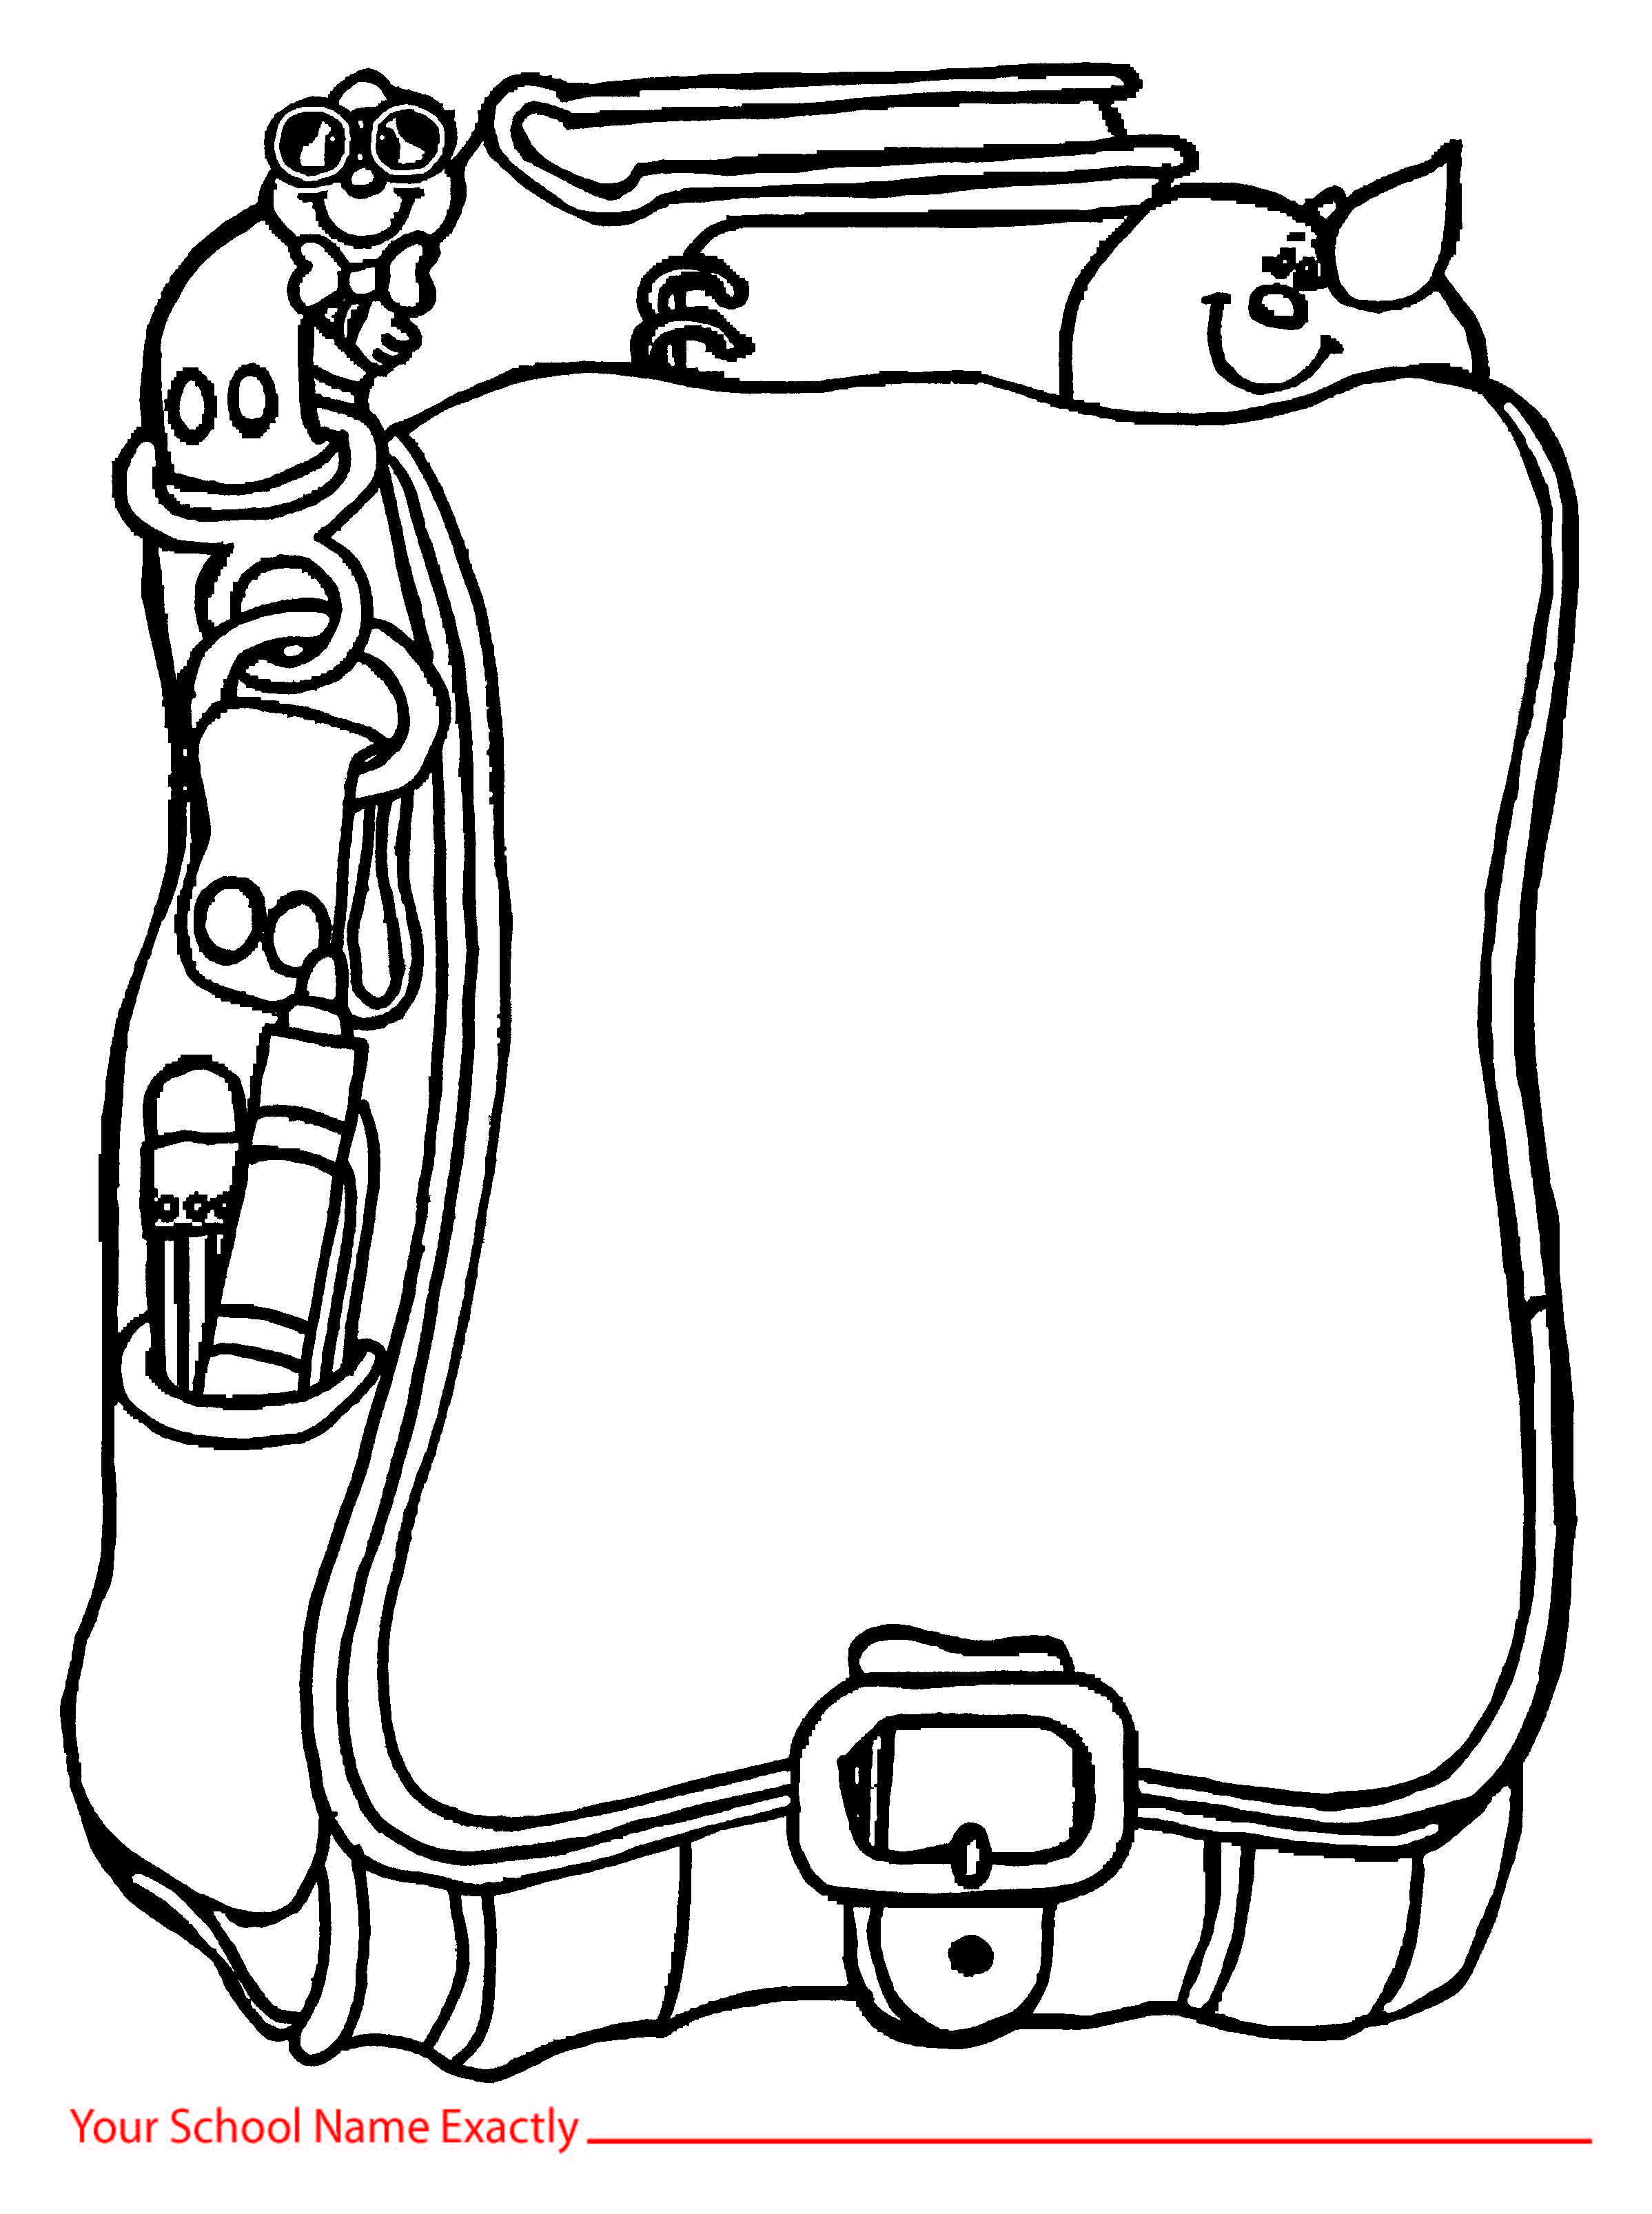 Backpack clipart outline. Free clipartmansion com templates